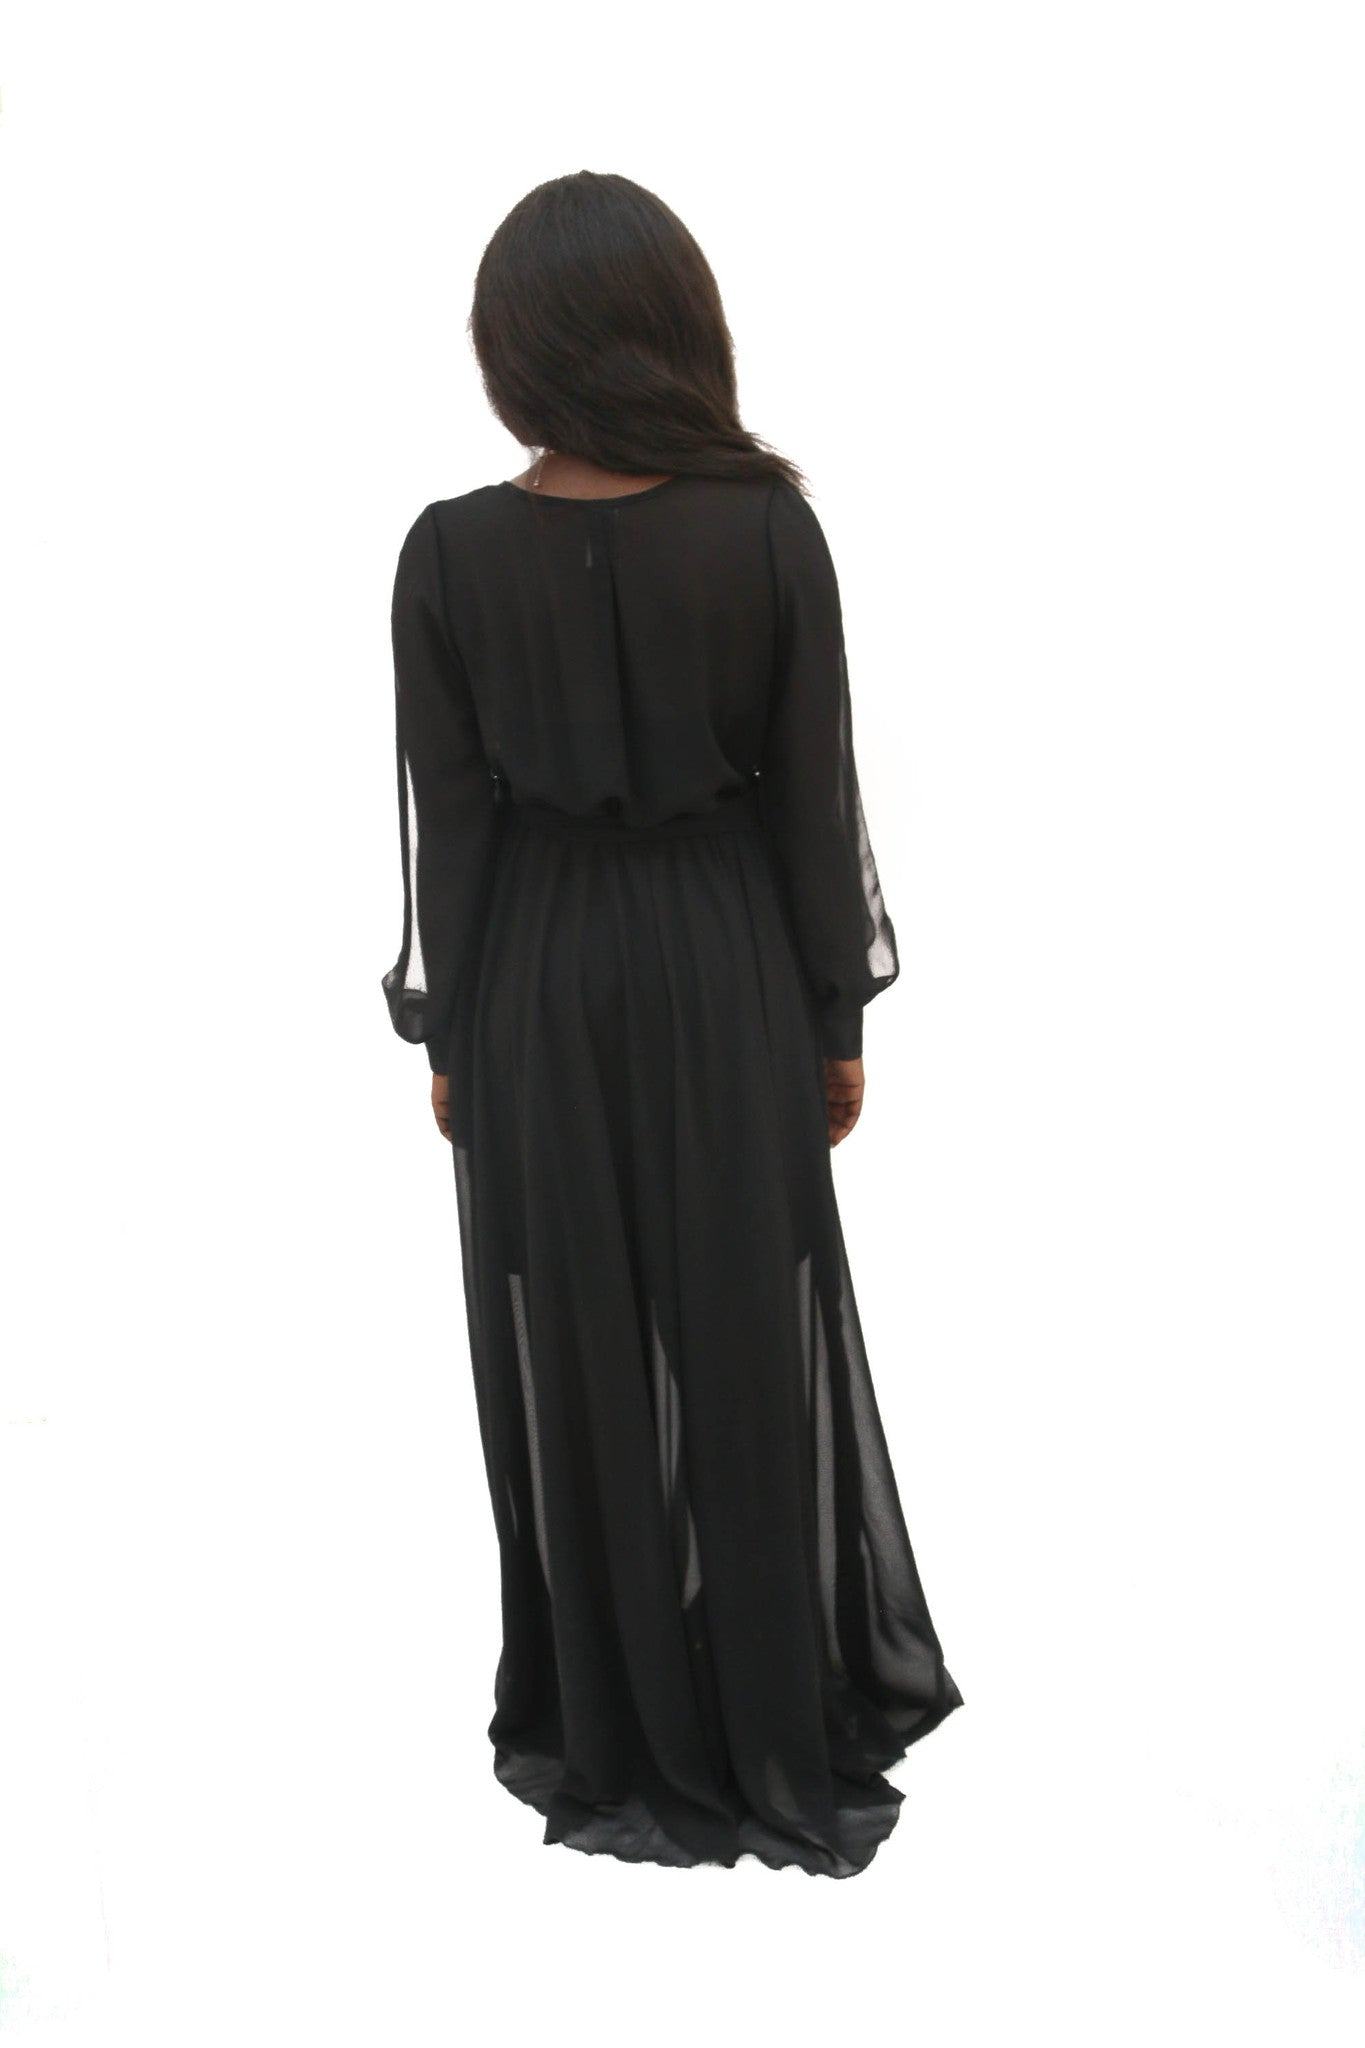 Lizette Sheer Maxi Dress